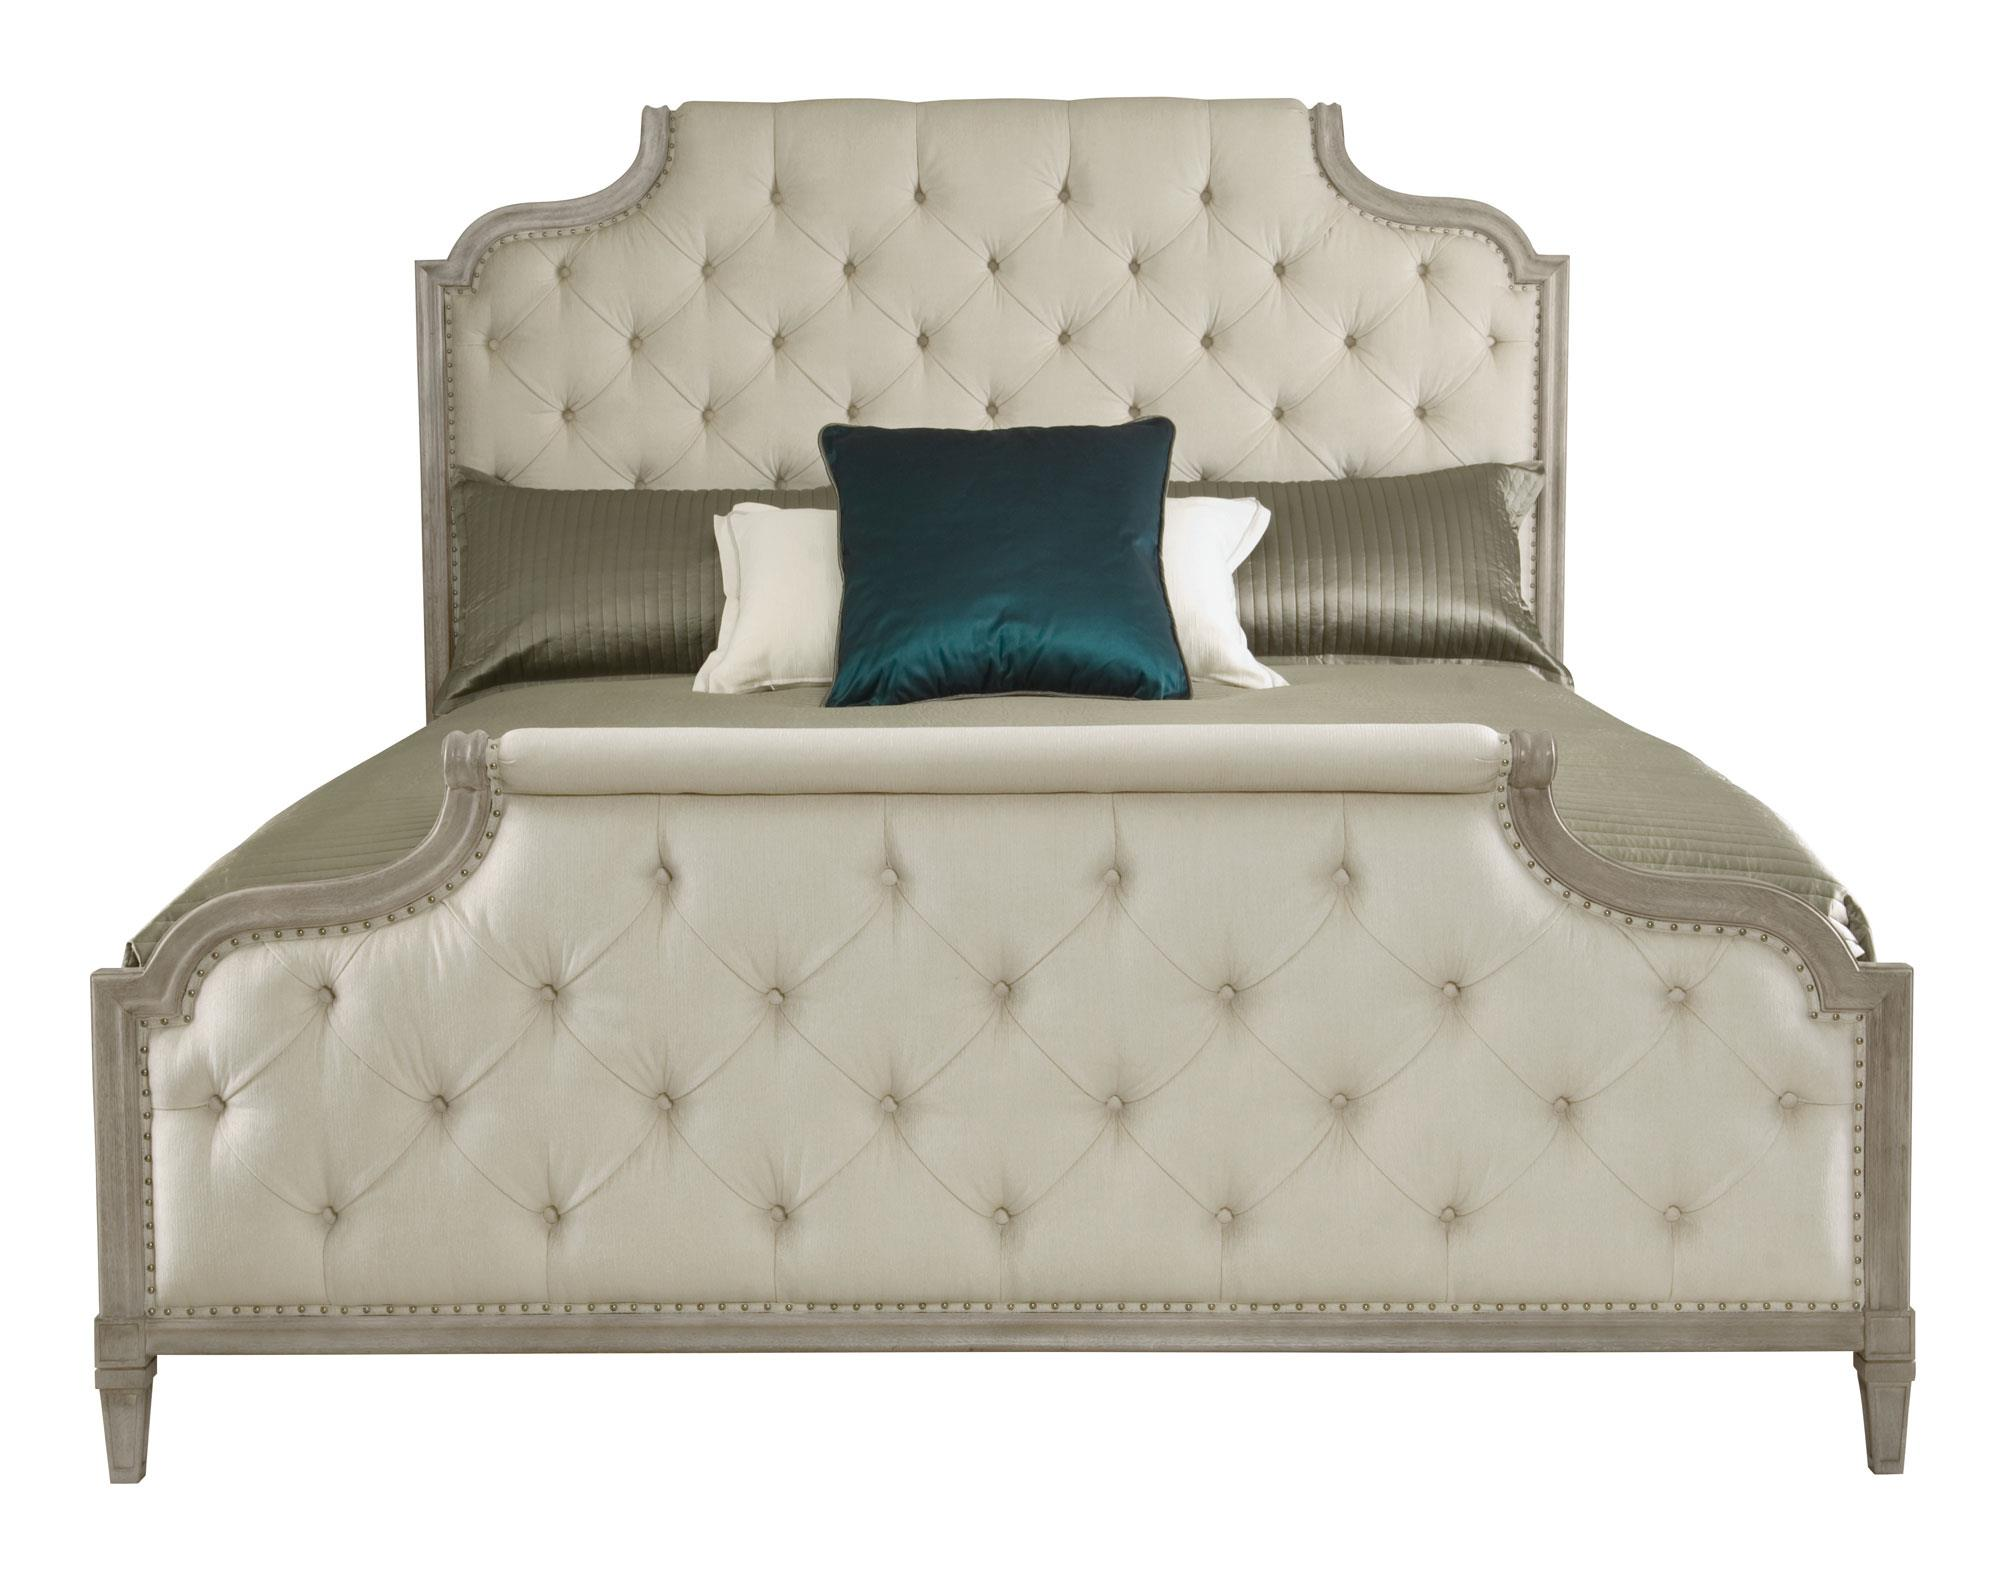 Marquesa Montrose King Upholstered Bed by Bernhardt at Morris Home